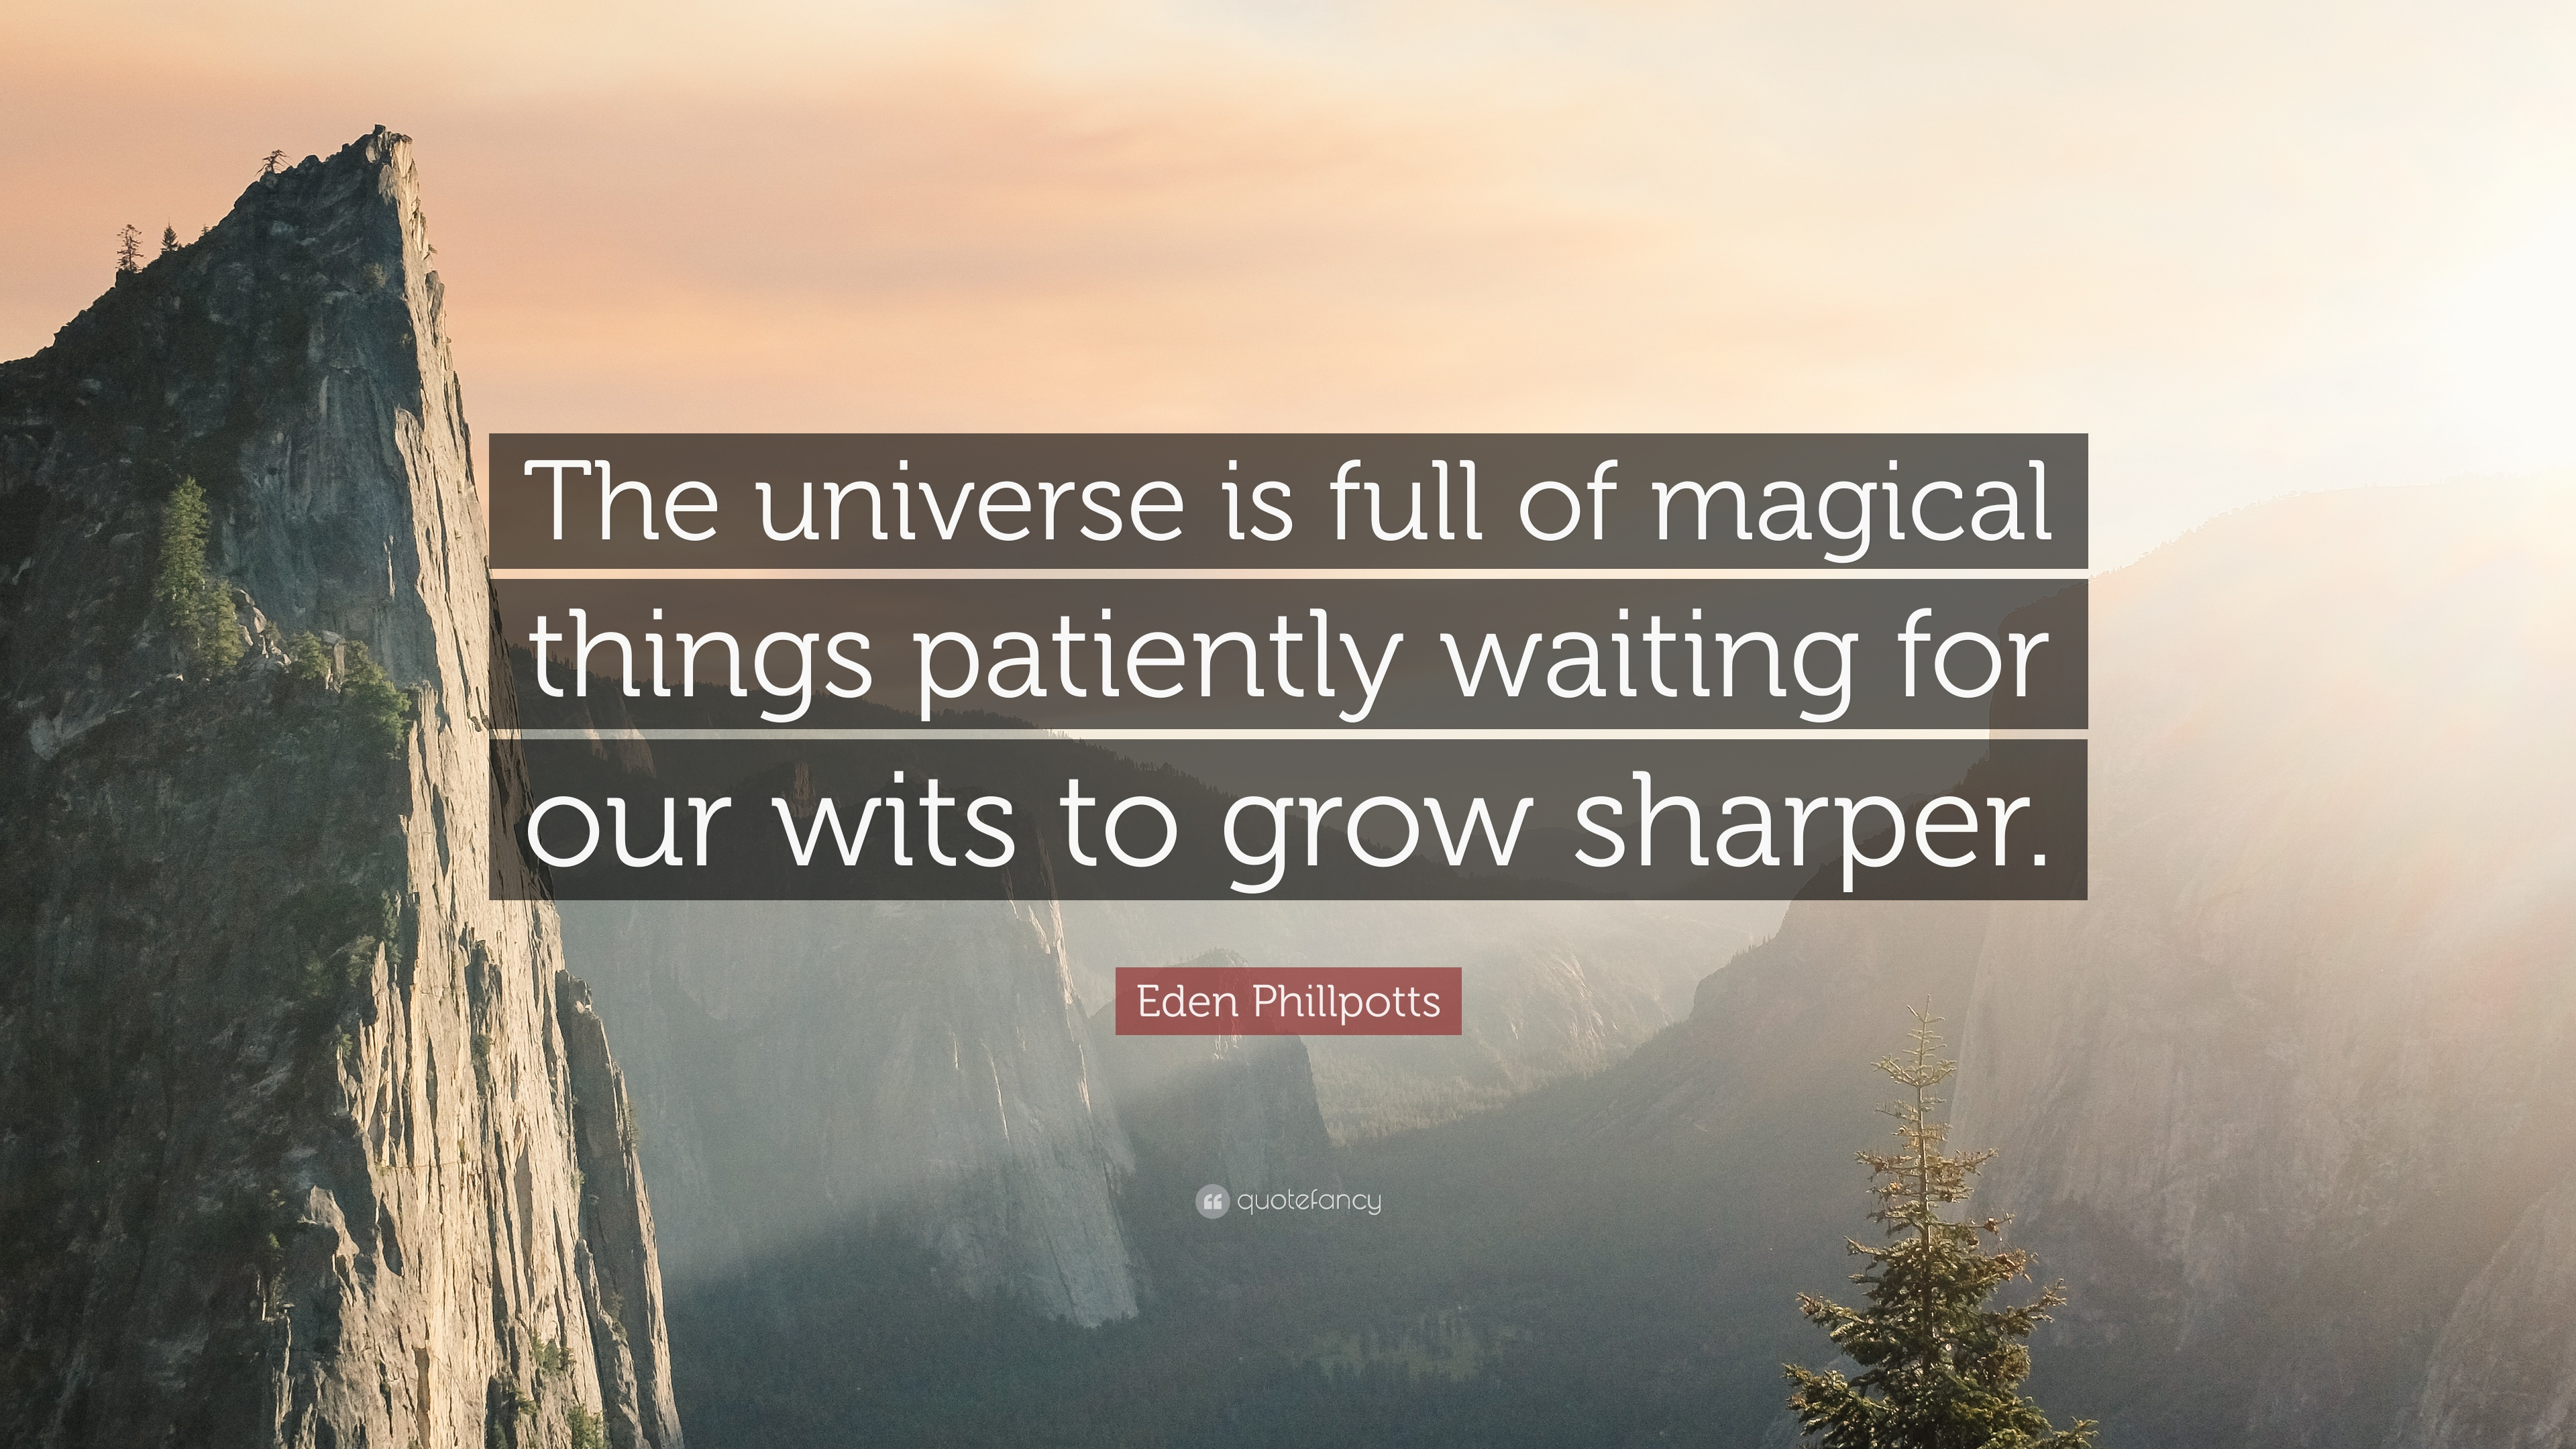 Magical Quotes Eden Phillpotts Quotes 10 Wallpapers  Quotefancy